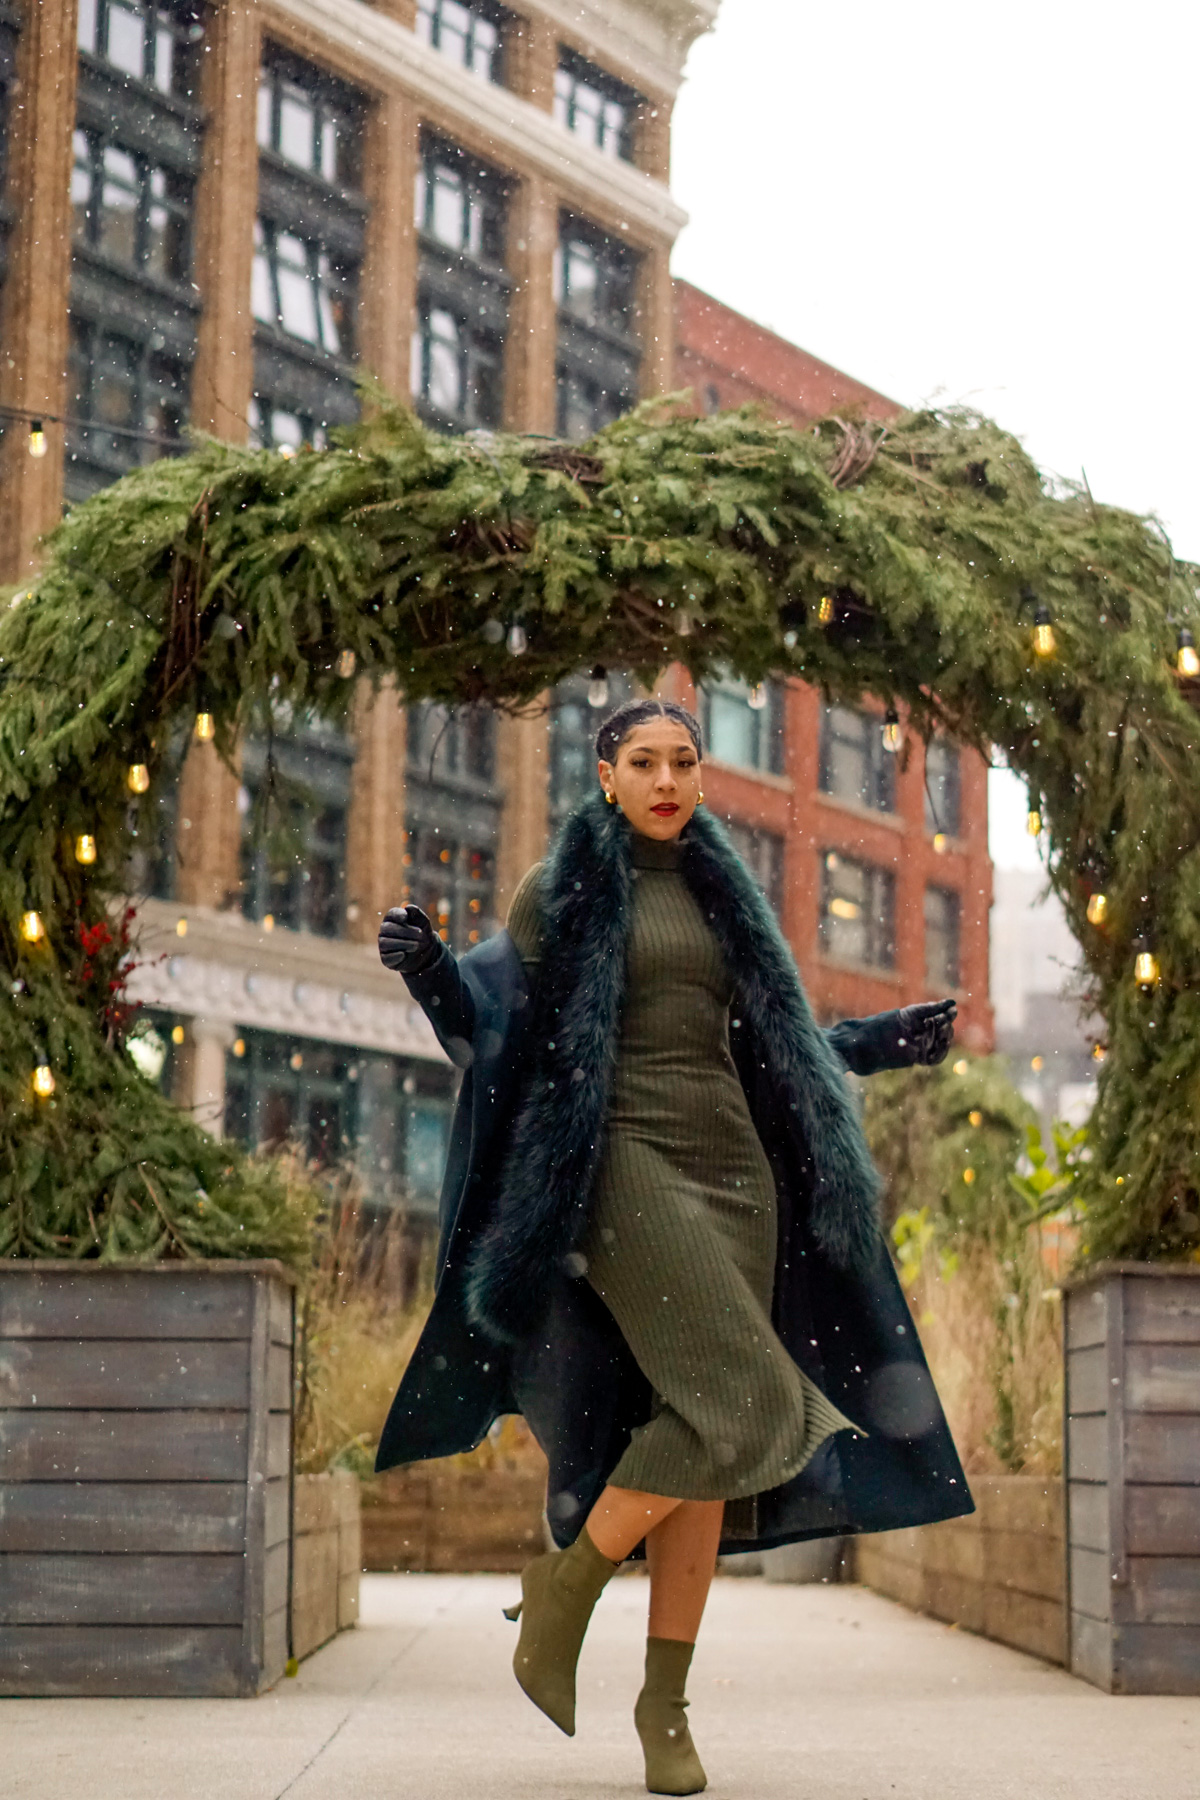 chic Christmas outfit idea for pear shaped women, black fashion blogger style outfits, Christmas holiday party outfit, green outfit ideas